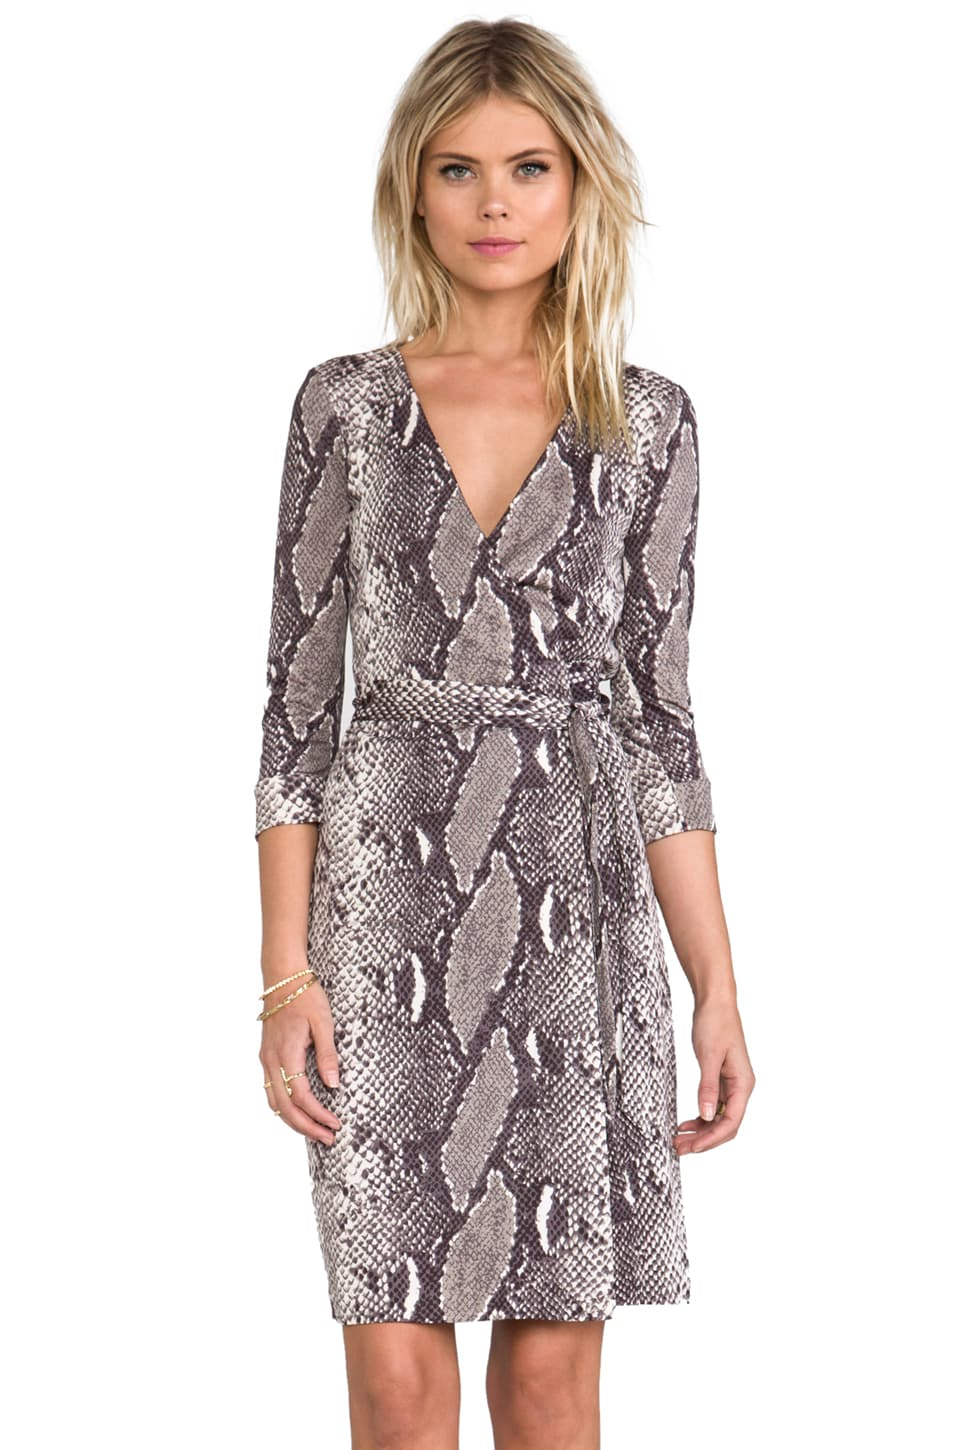 Diane von Furstenberg New Julian Two Silk Jersey Dress in Python